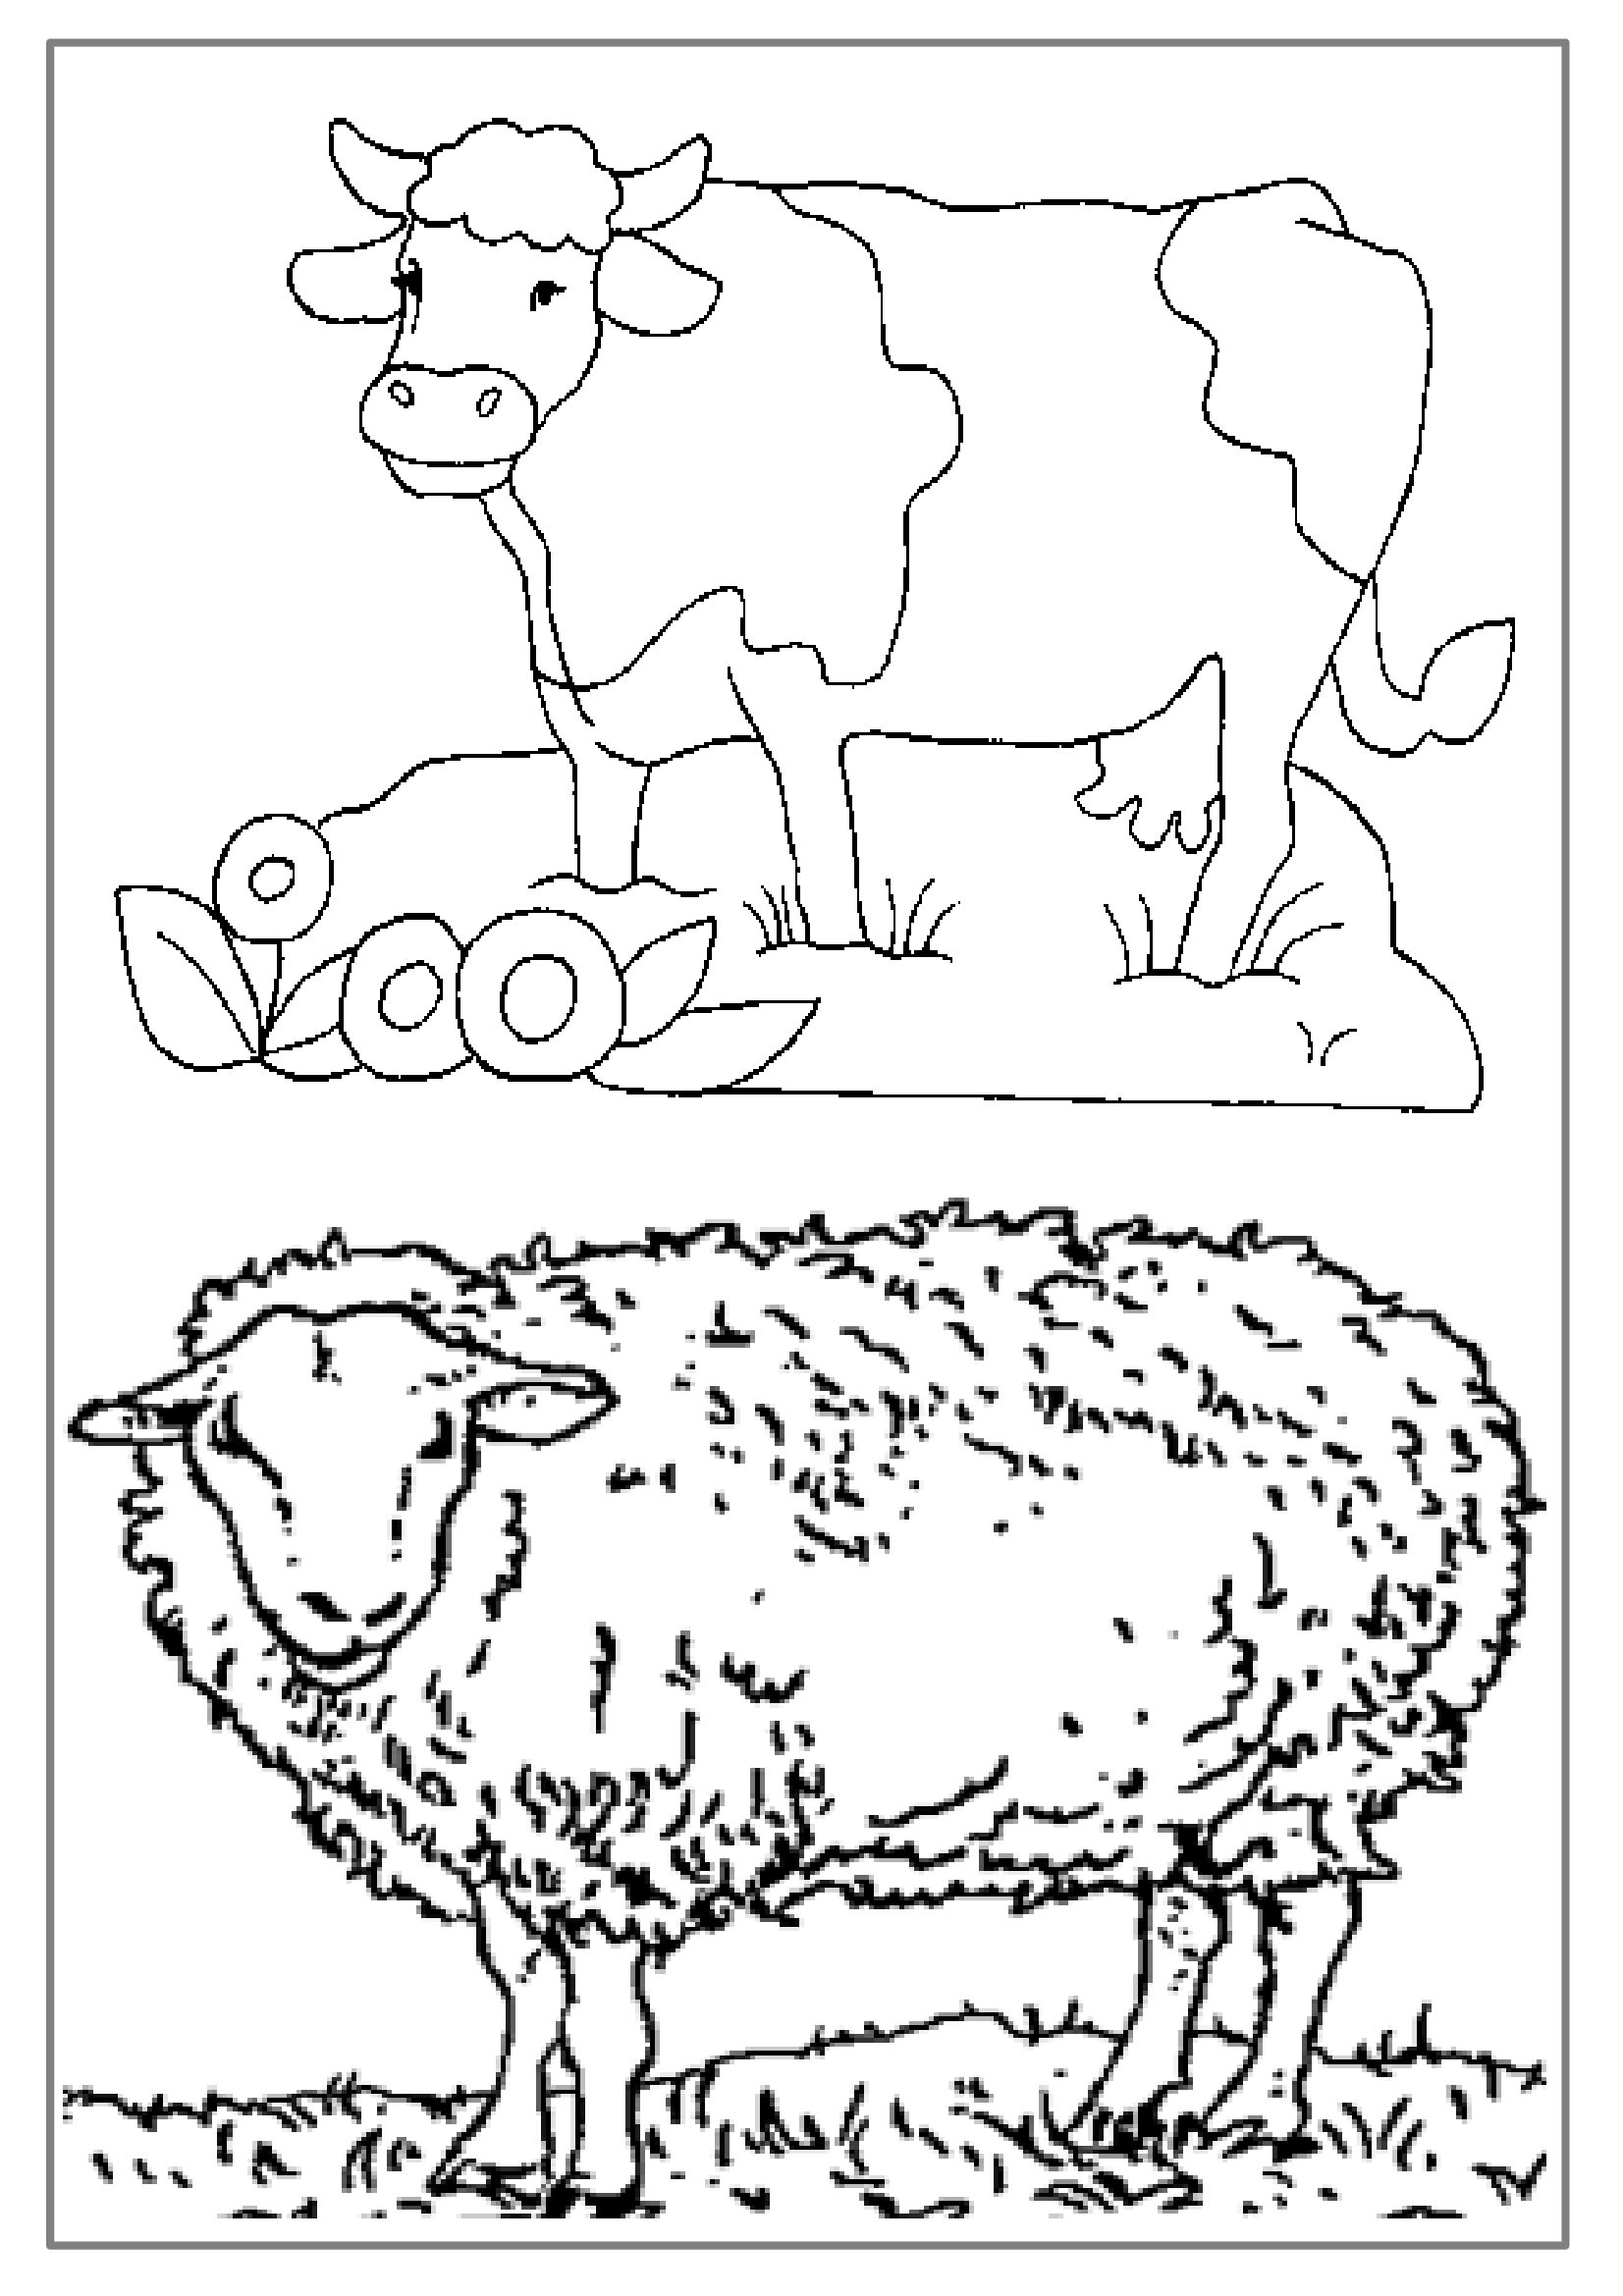 Coloriage Ferme Mouton.Coloriages Educatifs Dessin Animaux De La Ferme A Colorier